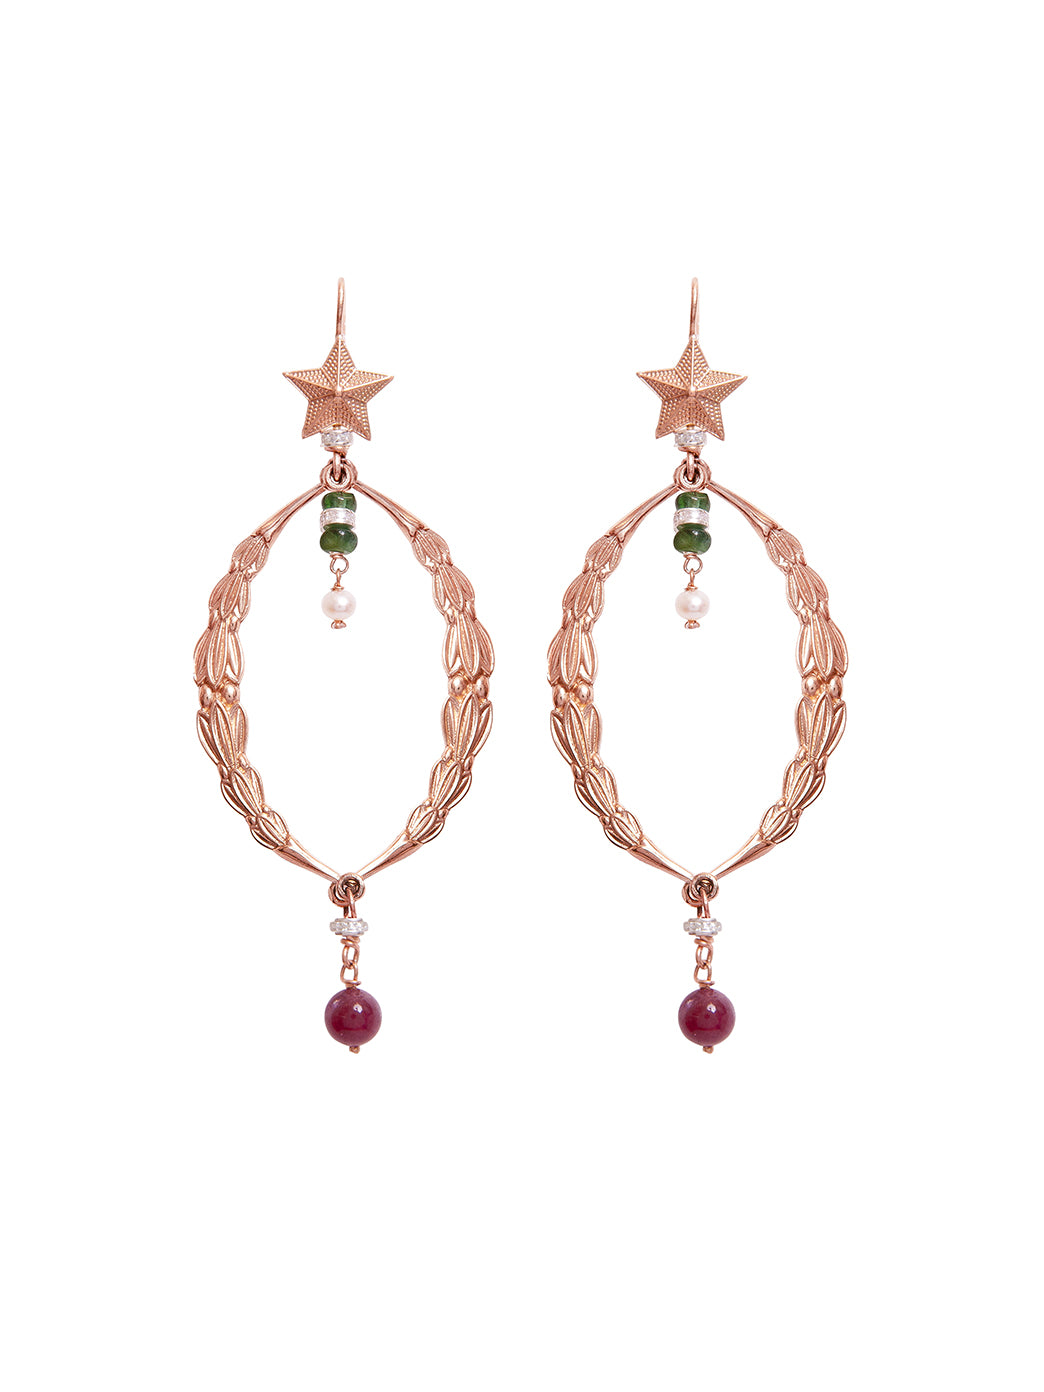 Fiorina Jewellery Magnificence Earrings Rose Gold